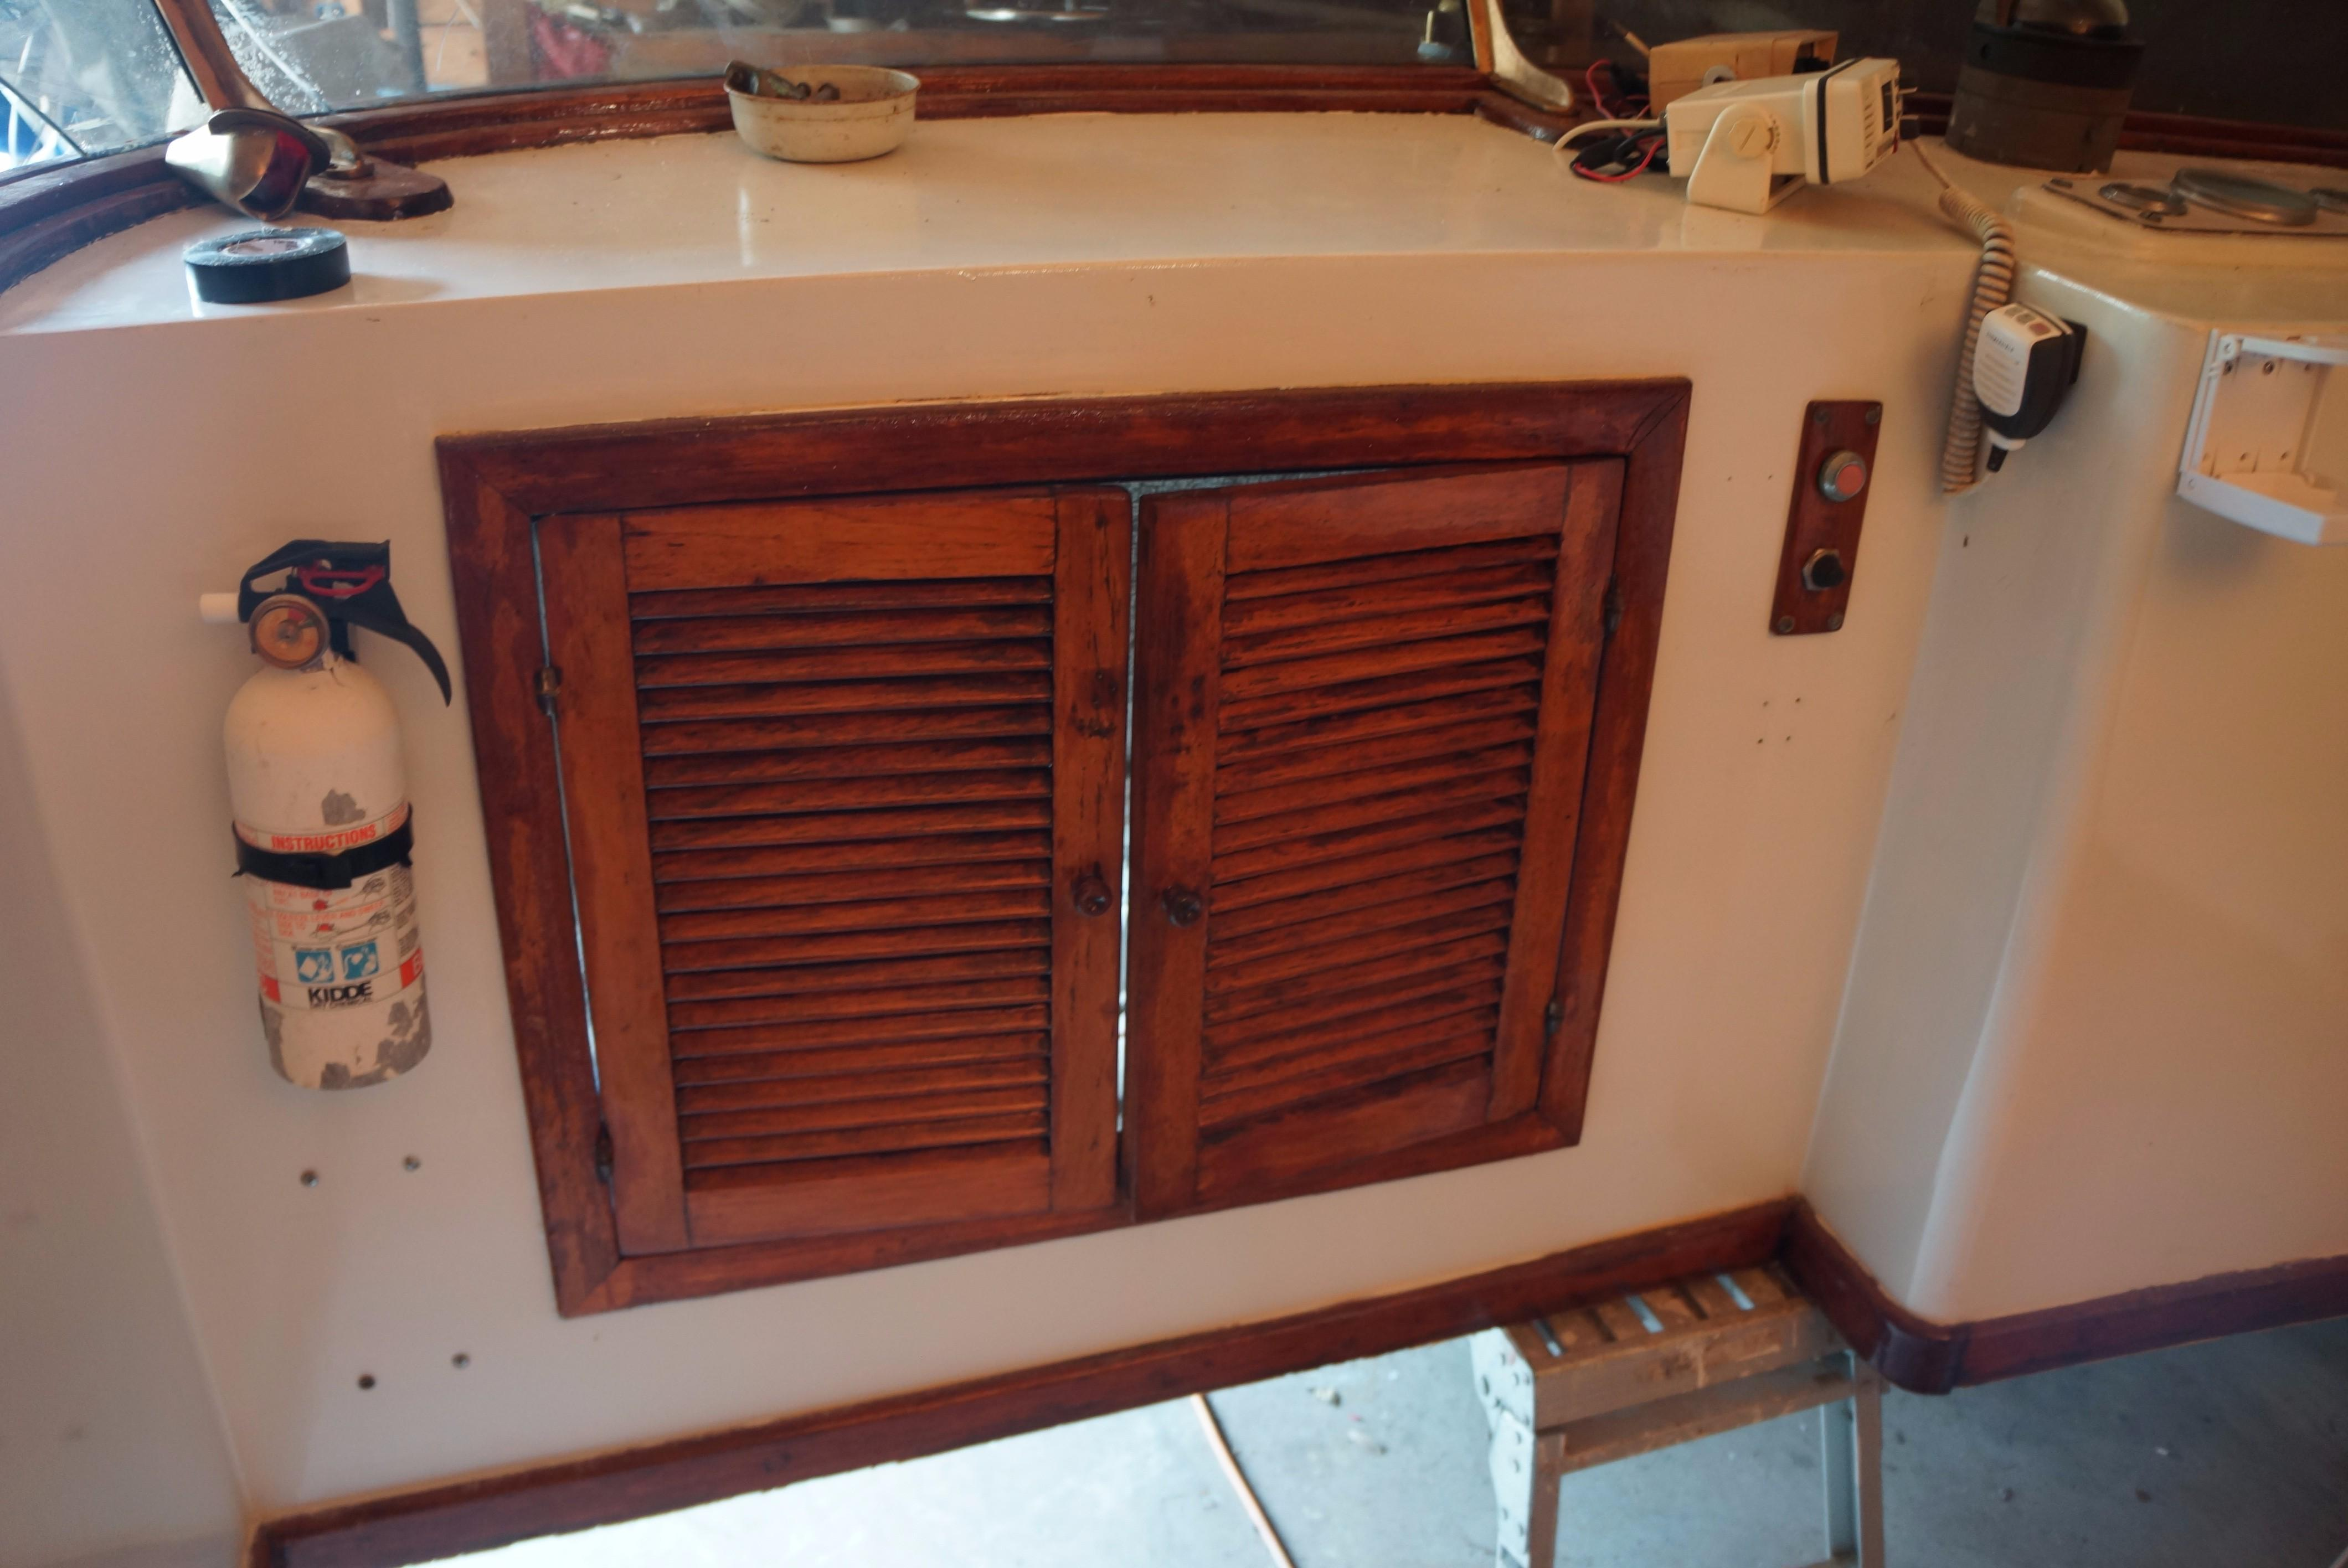 Marine Trader 34 Double Cabin - 34 Marine Trader Access Doors